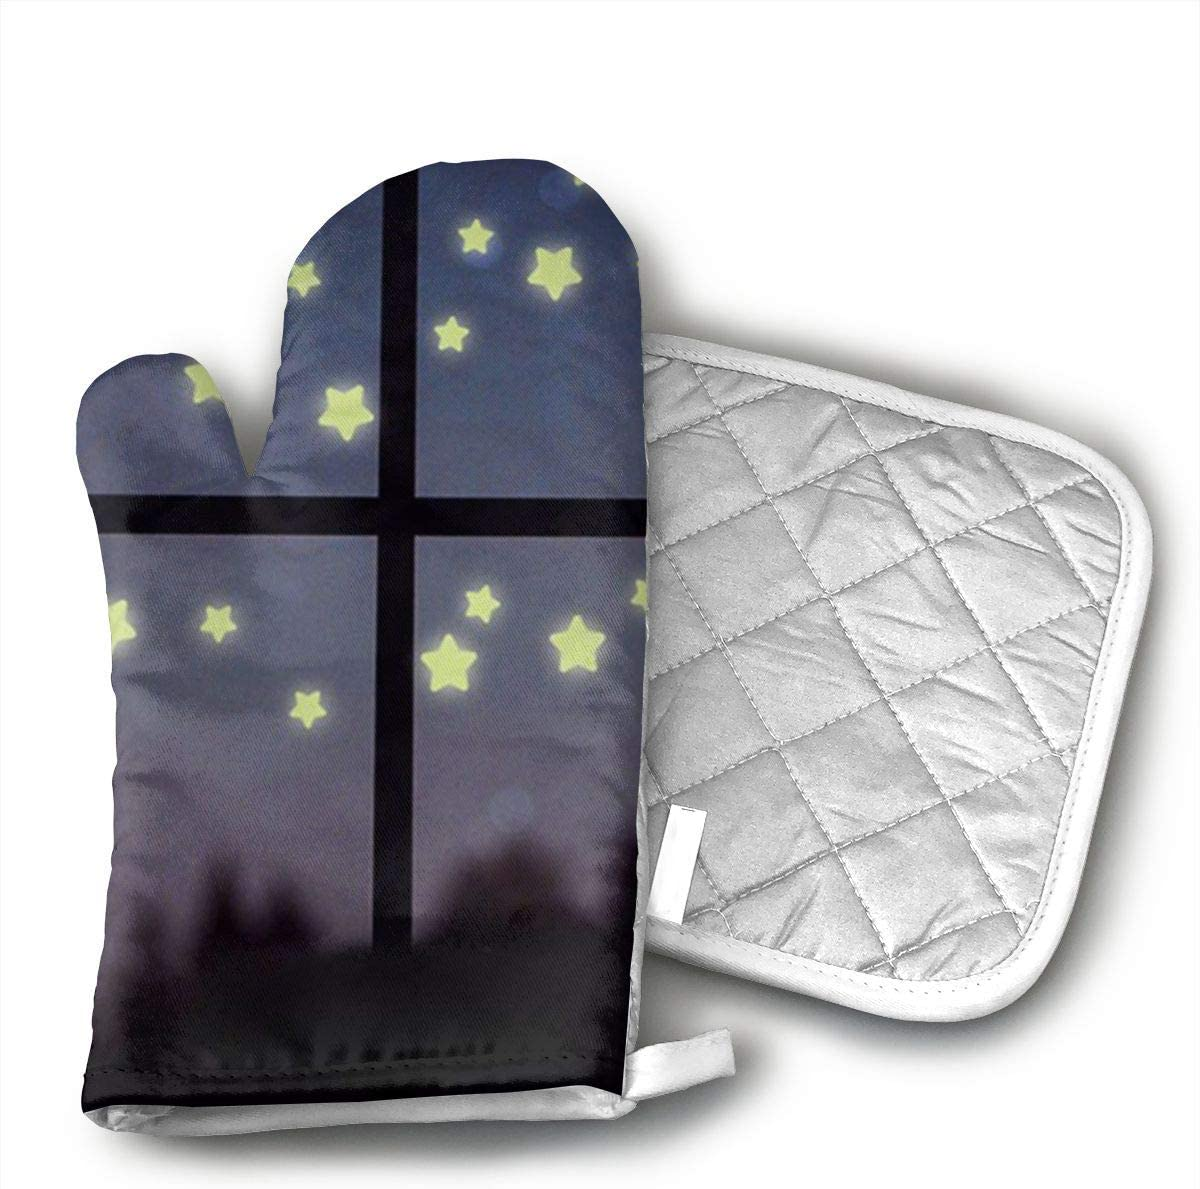 LZMBH Glow in The Dark Luminous Oven Mitts Professional Heat Resistance Kitchen Oven Soft Cotton Gloves for Grilling Cooking Microwave BBQ Baking